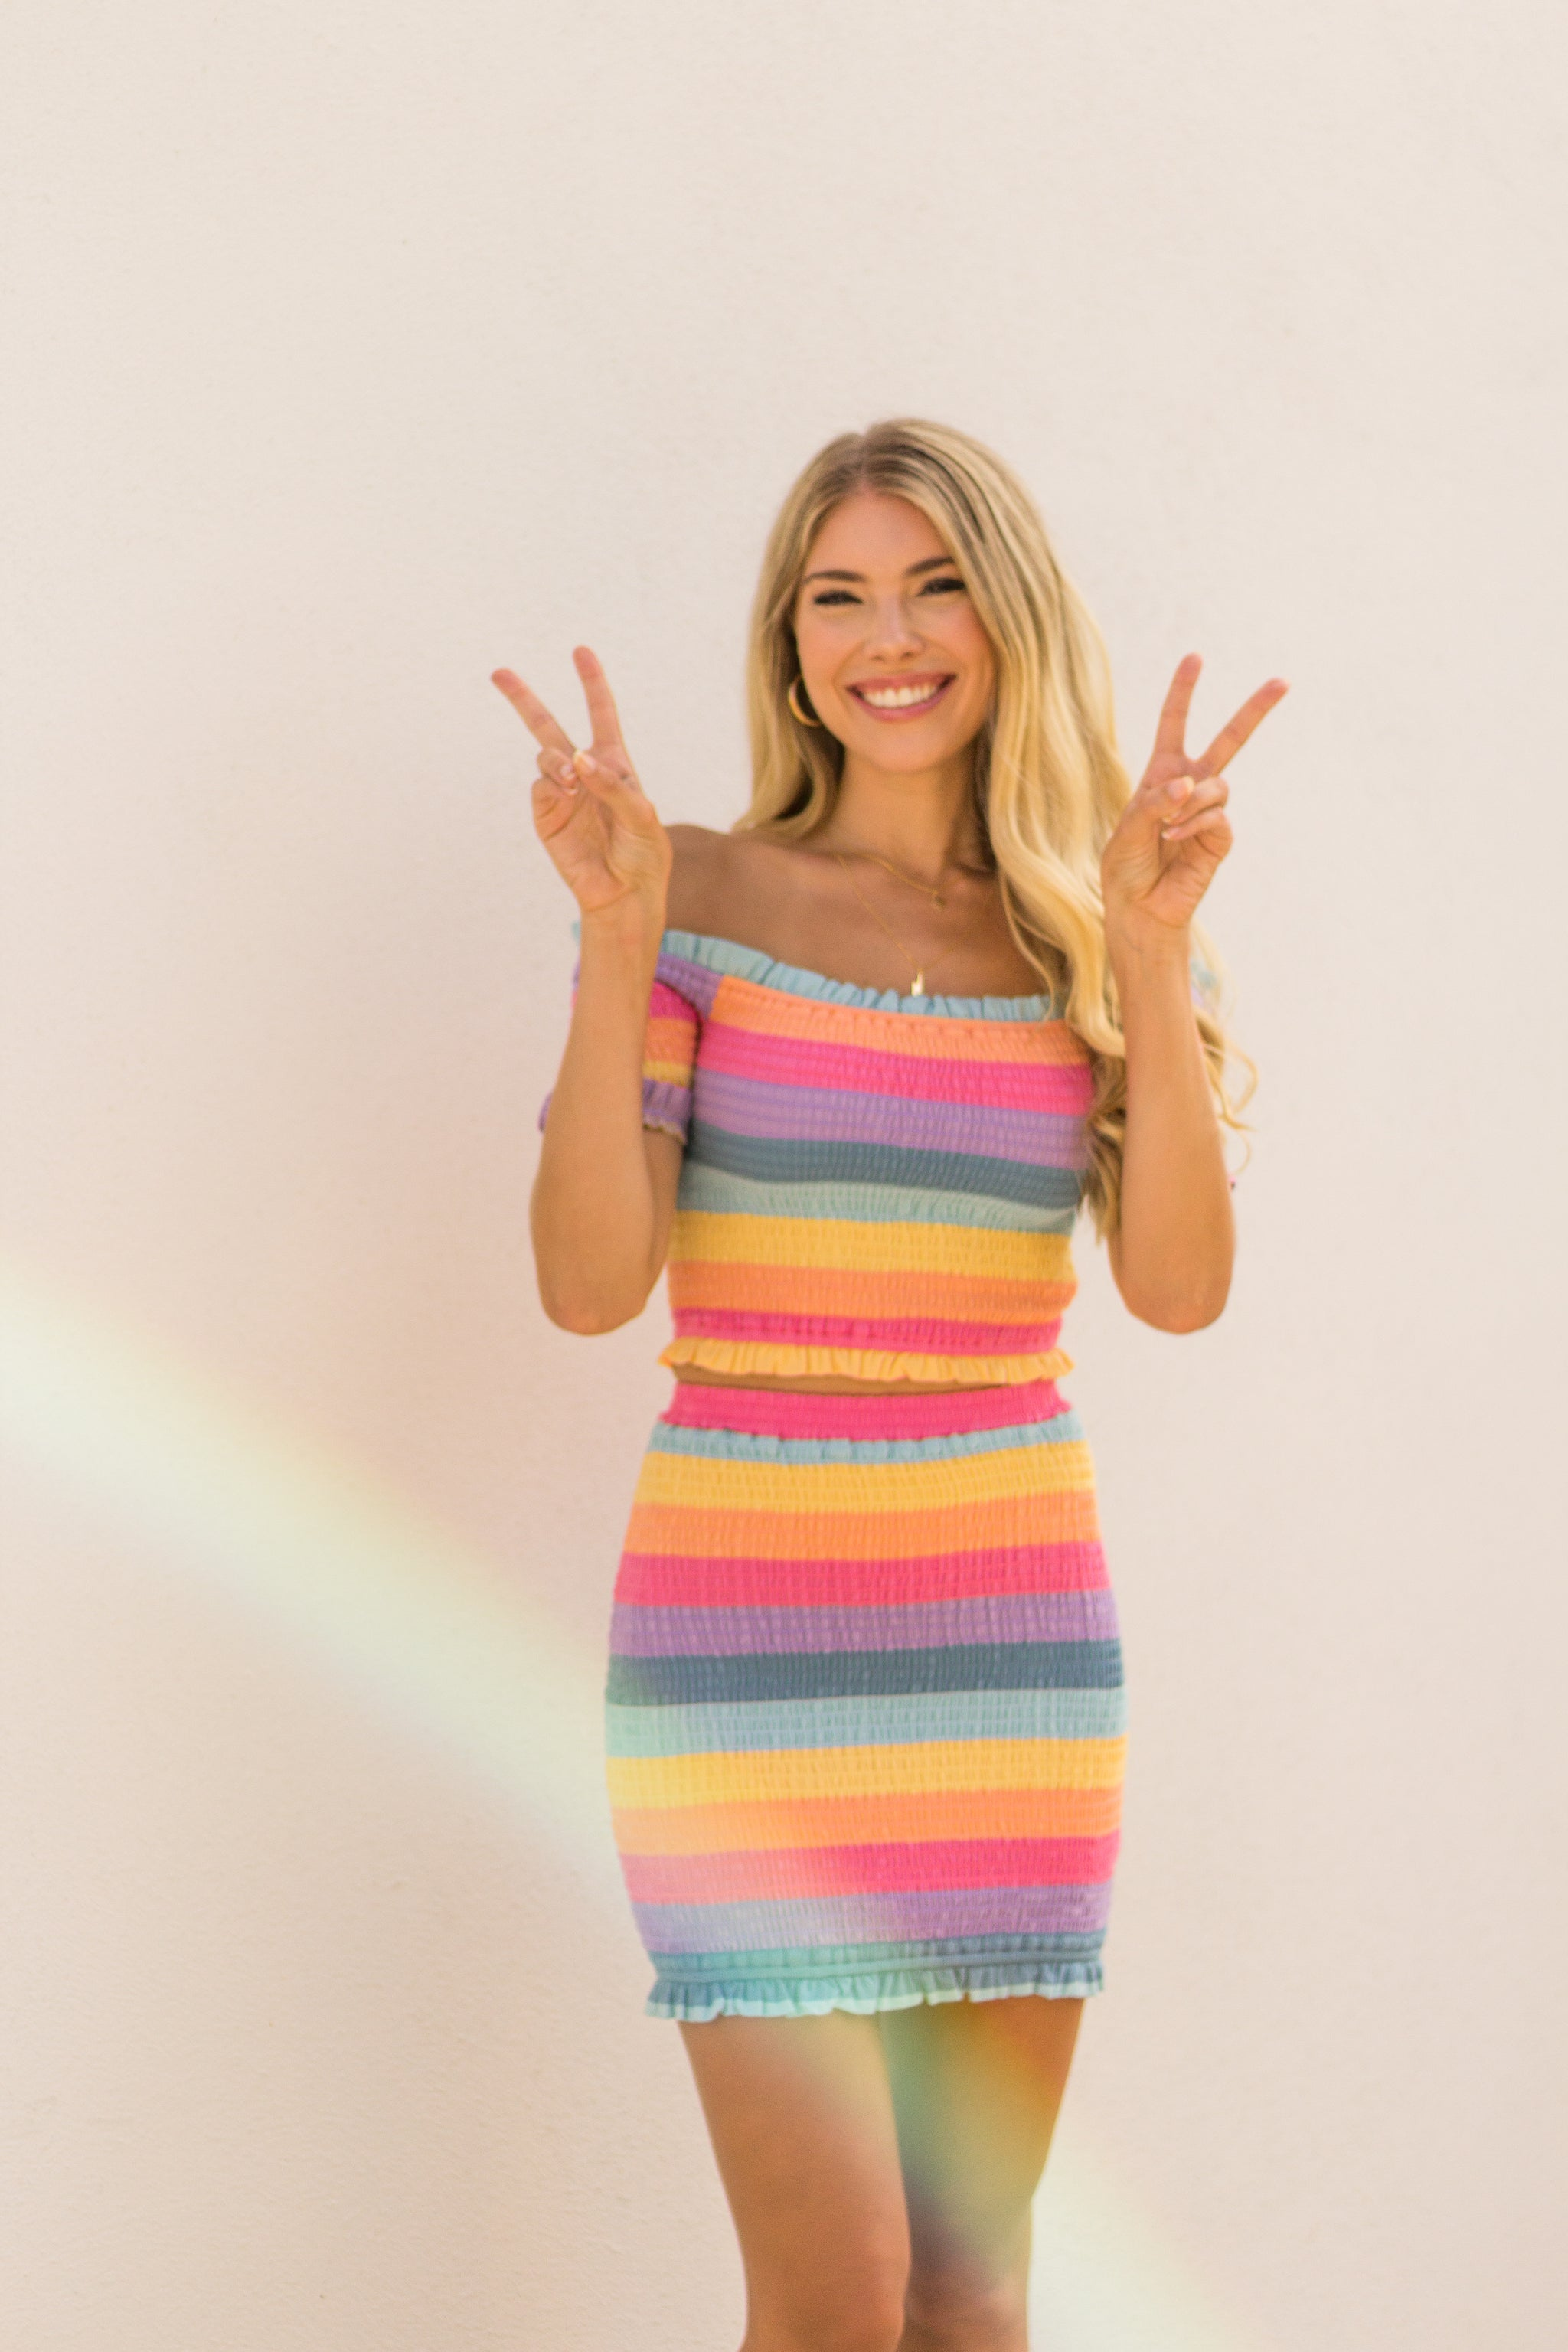 Bright and bold rainbow colors stripe this stretchy and smocked skirt. This printed skirt has a ruffle hem at the bottom and hugs your body to accentuate your curves.